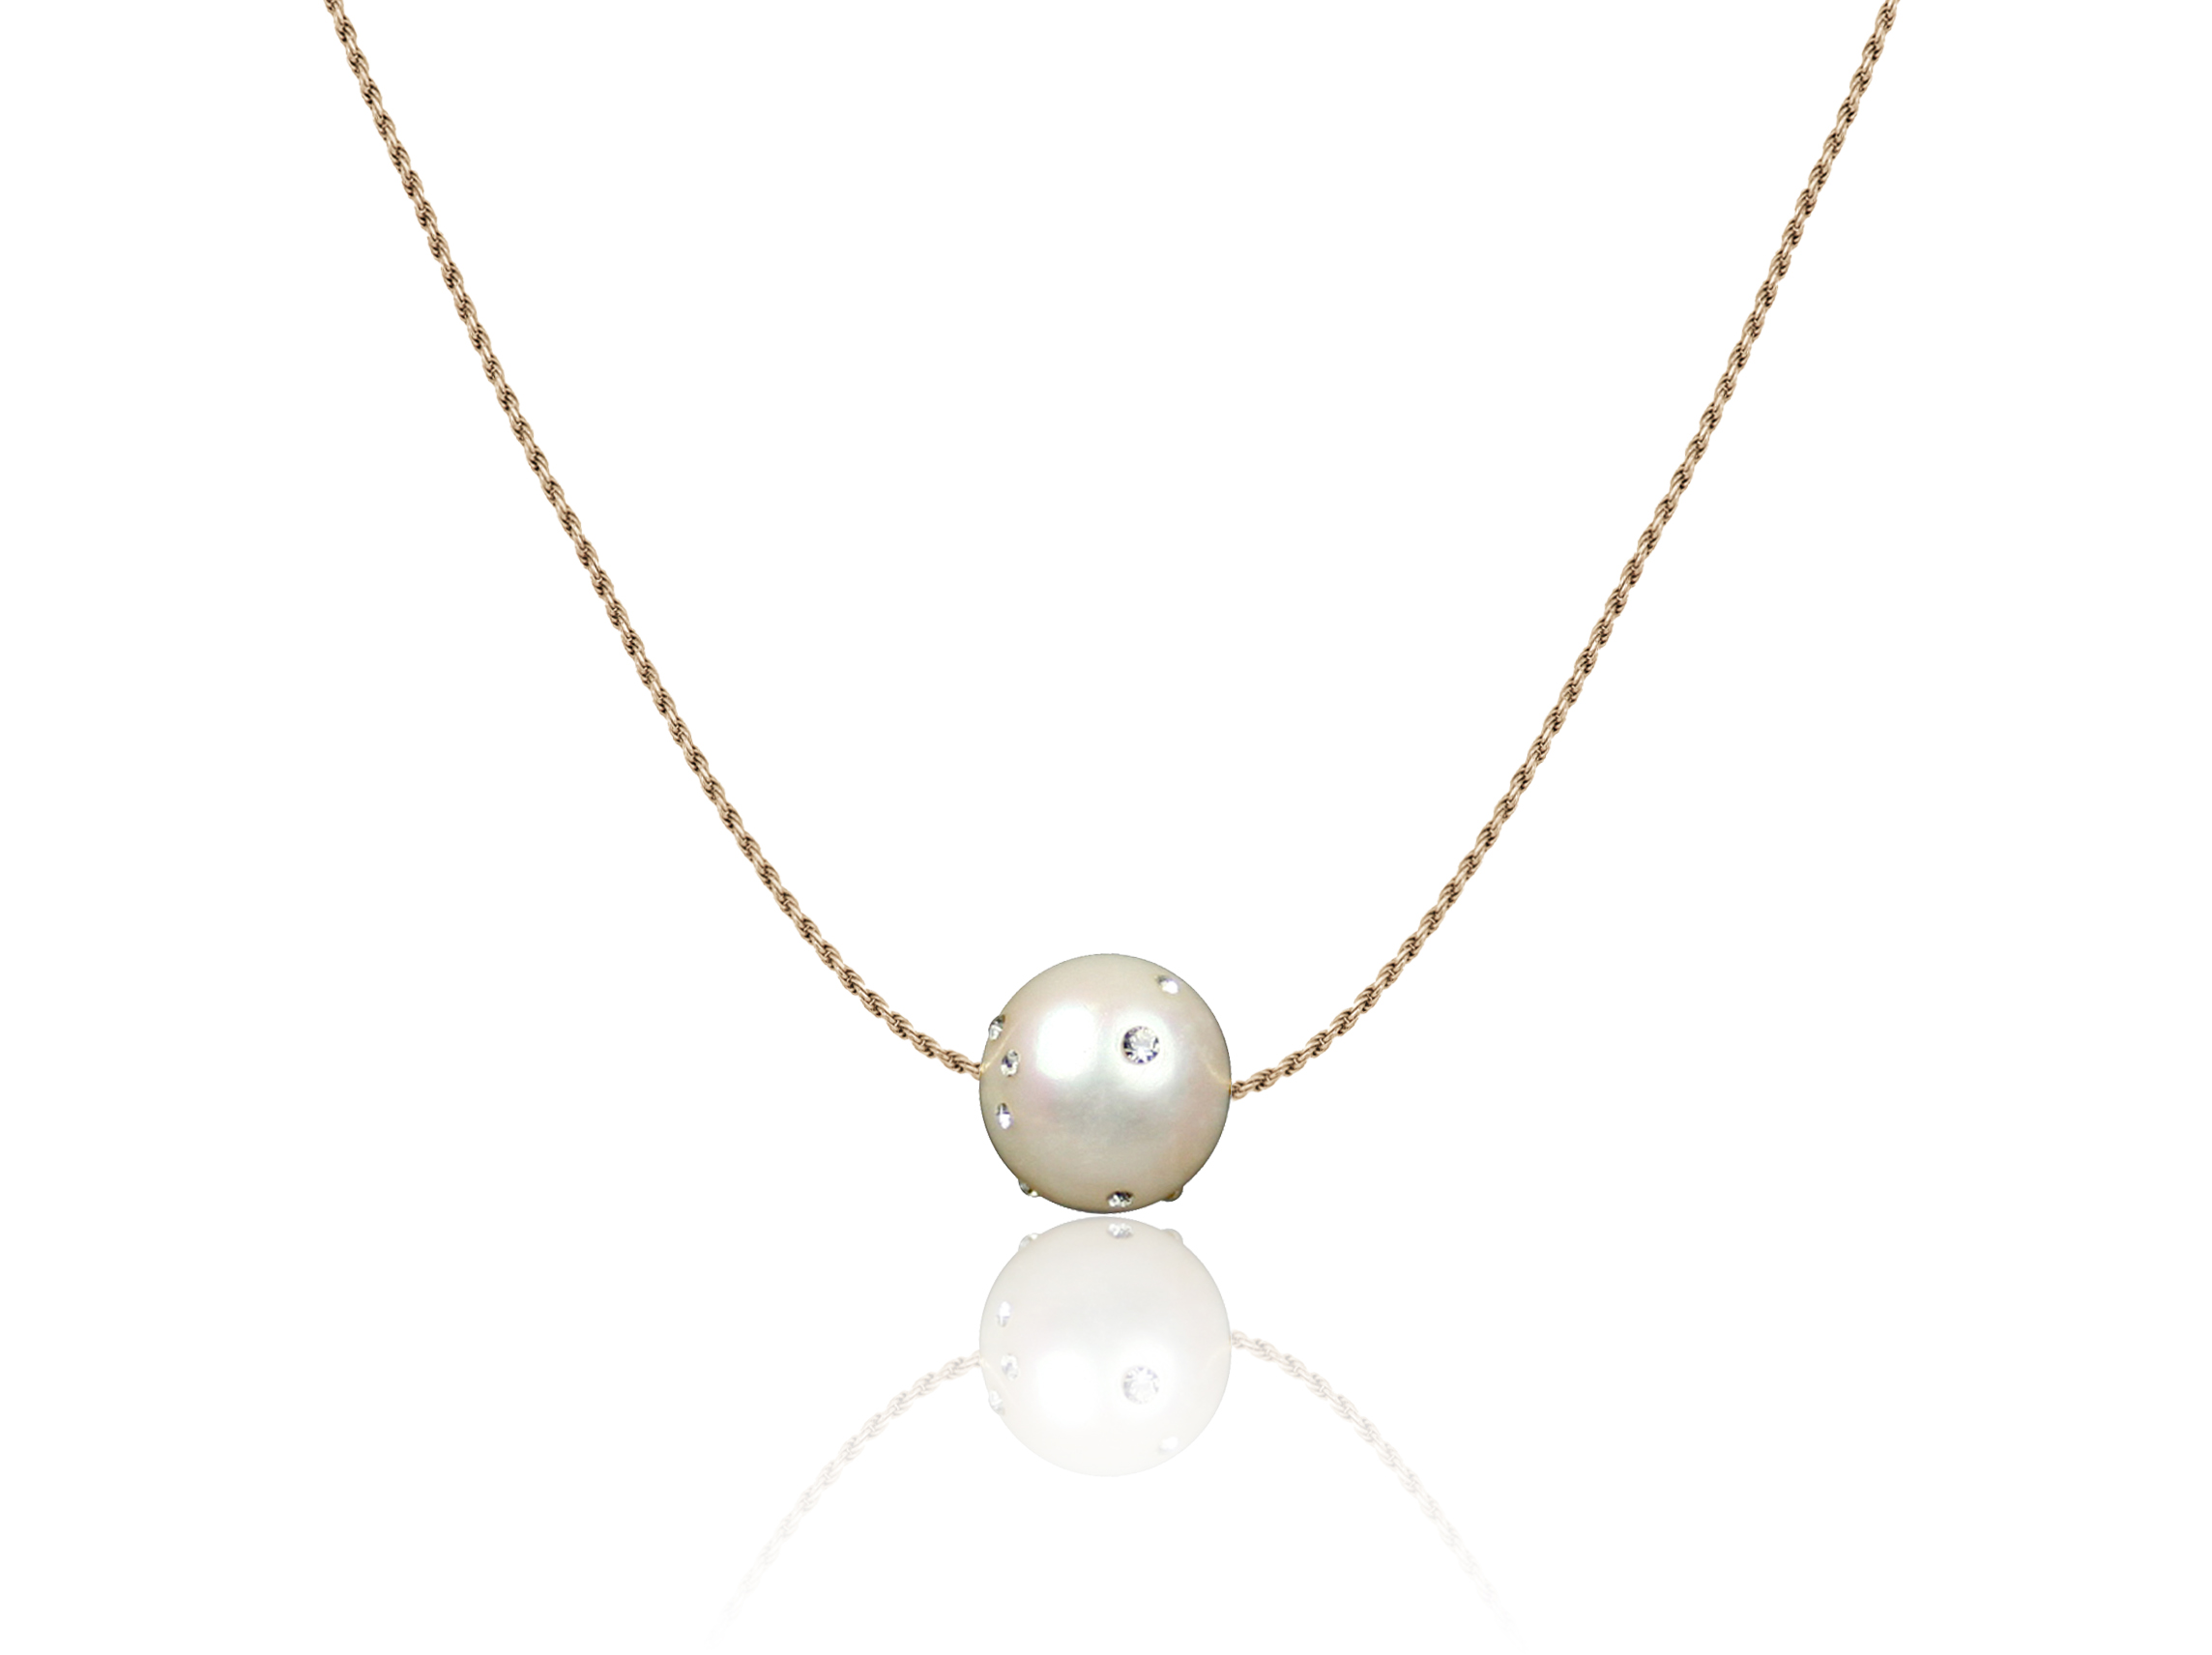 Freshwater Pearl with gold-filled chain and Swarovski Crystal